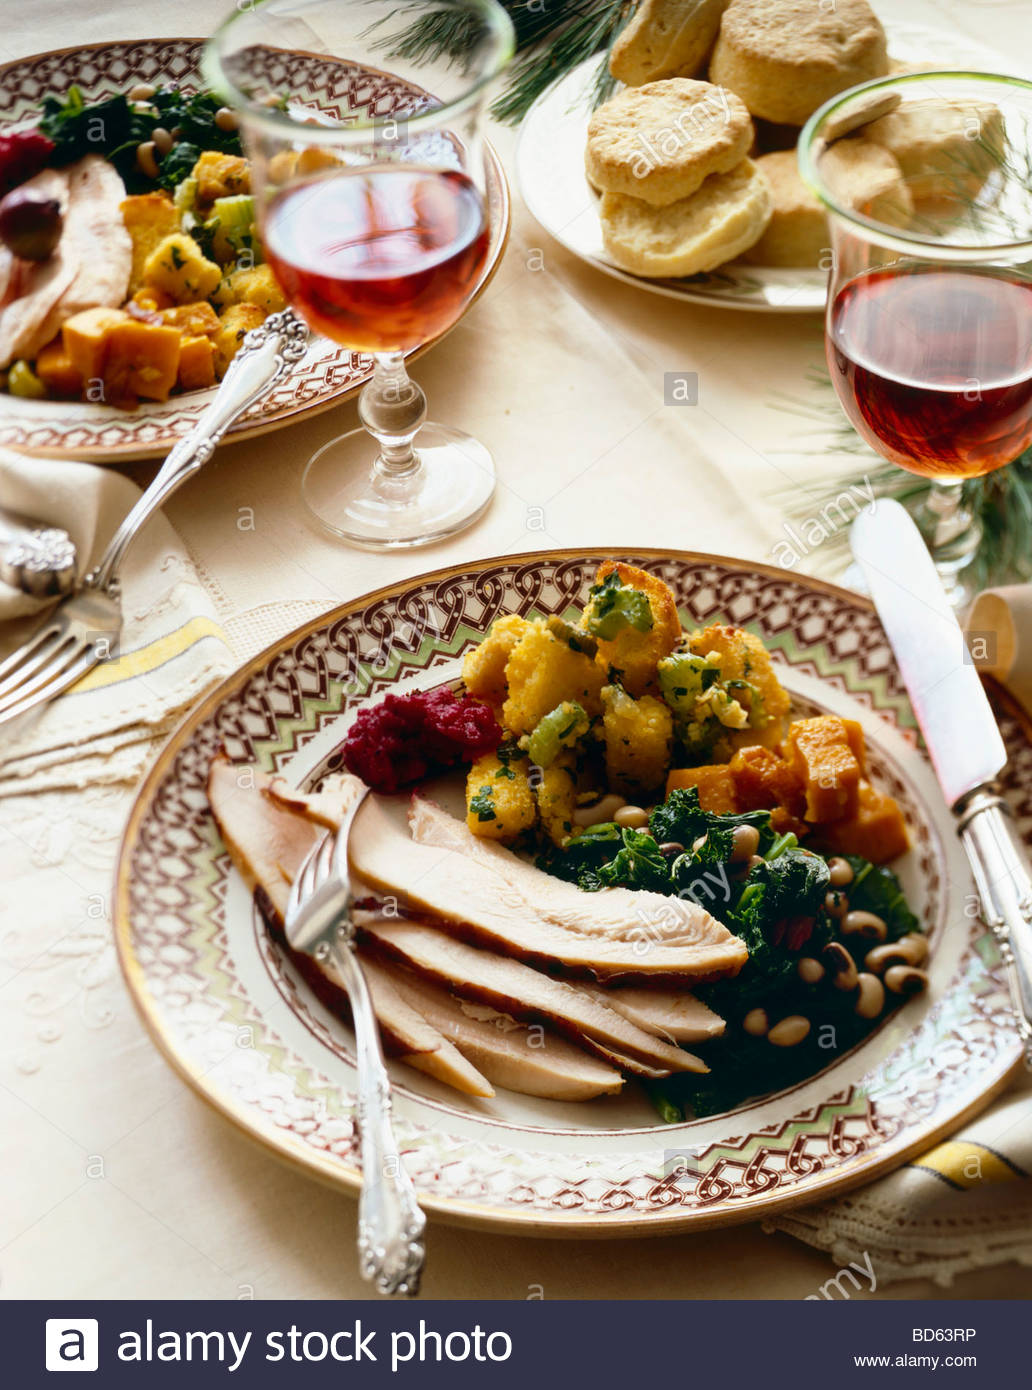 Holiday Dinner Plate with Turkey and Sides on Dinner Table with Wine and Biscuits & Holiday Dinner Plate with Turkey and Sides on Dinner Table with Wine ...